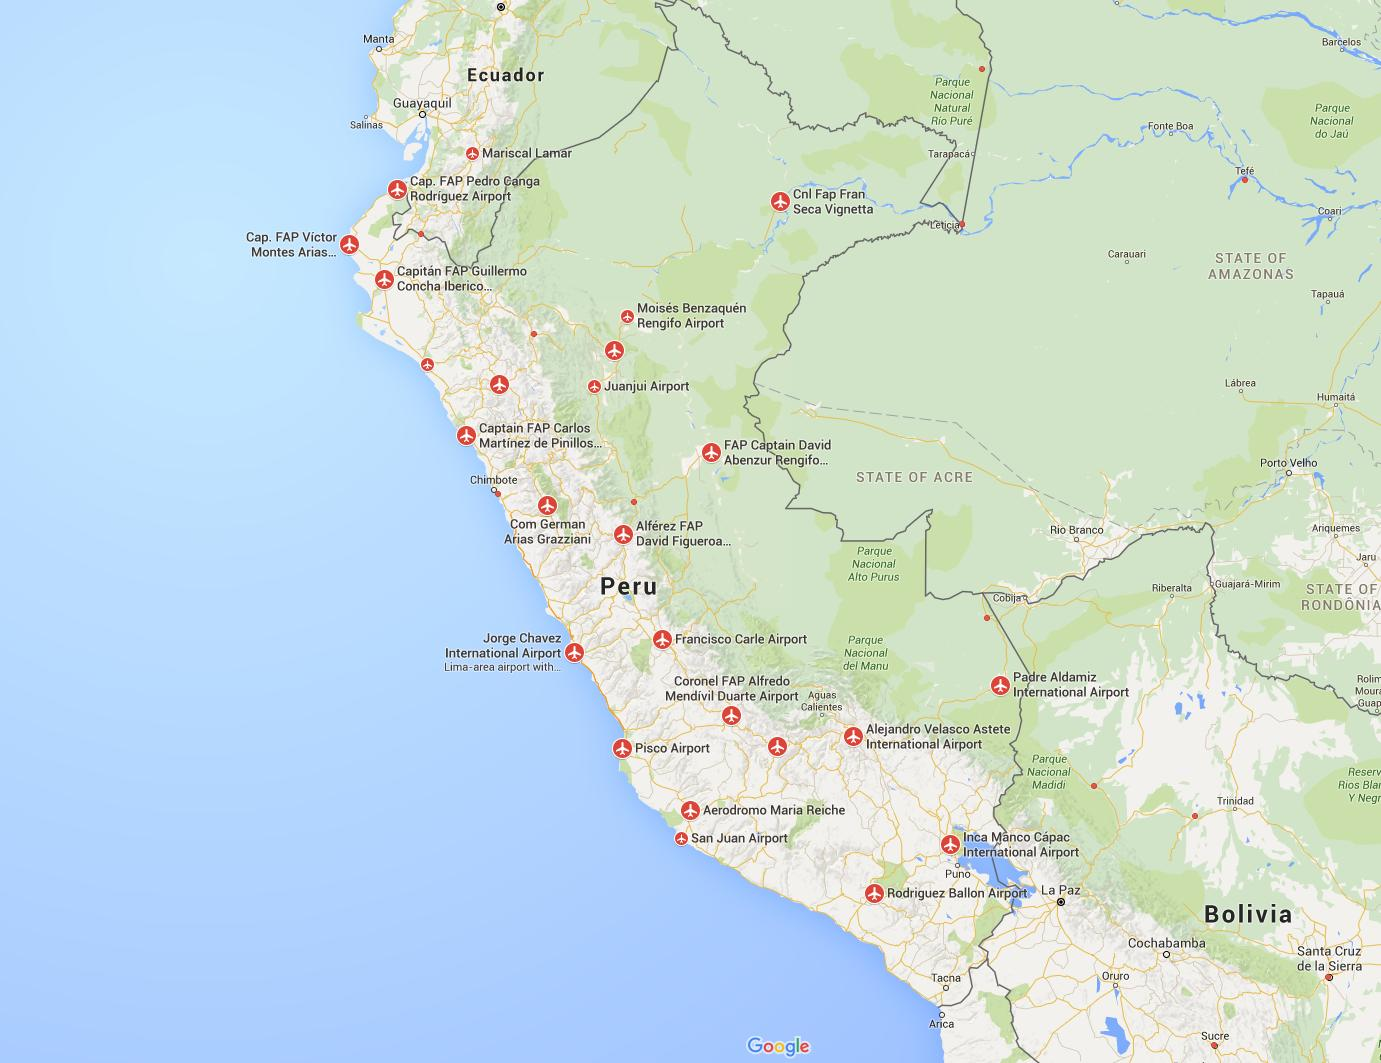 Airports In Peru Map.Peru Airports Map Airports In Peru Map South America Americas